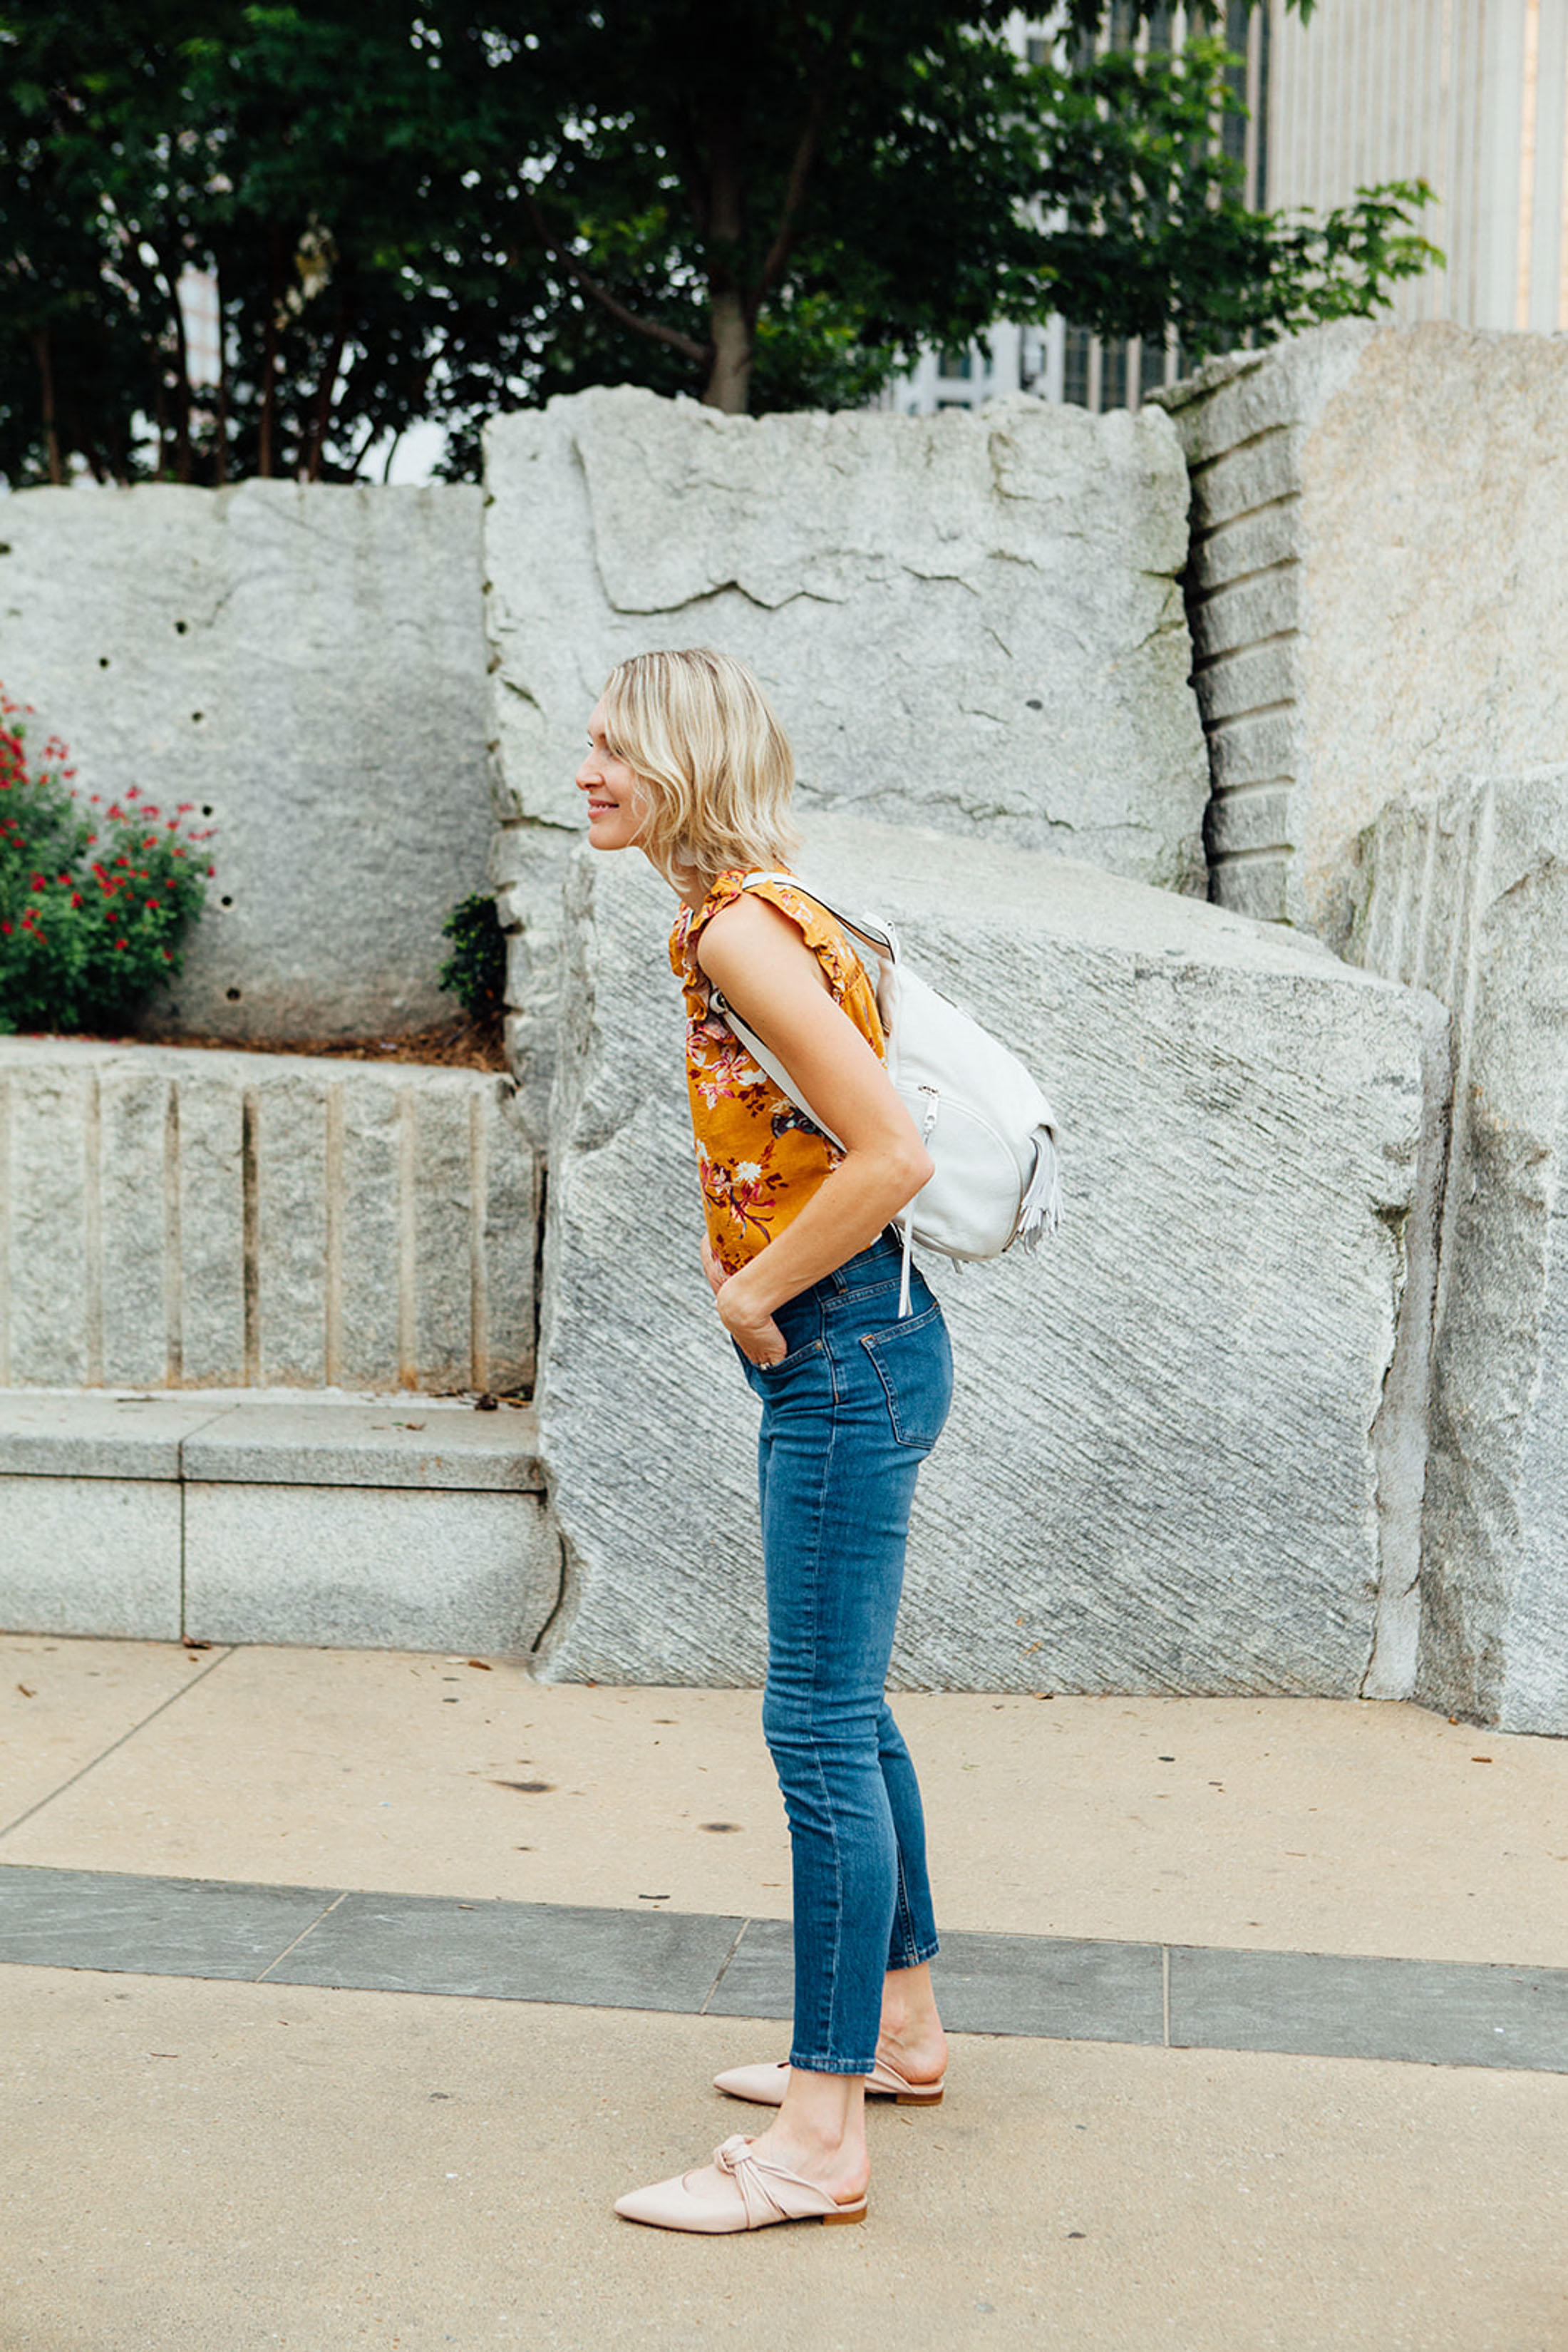 wearing cropped top with ankle jeans and mules